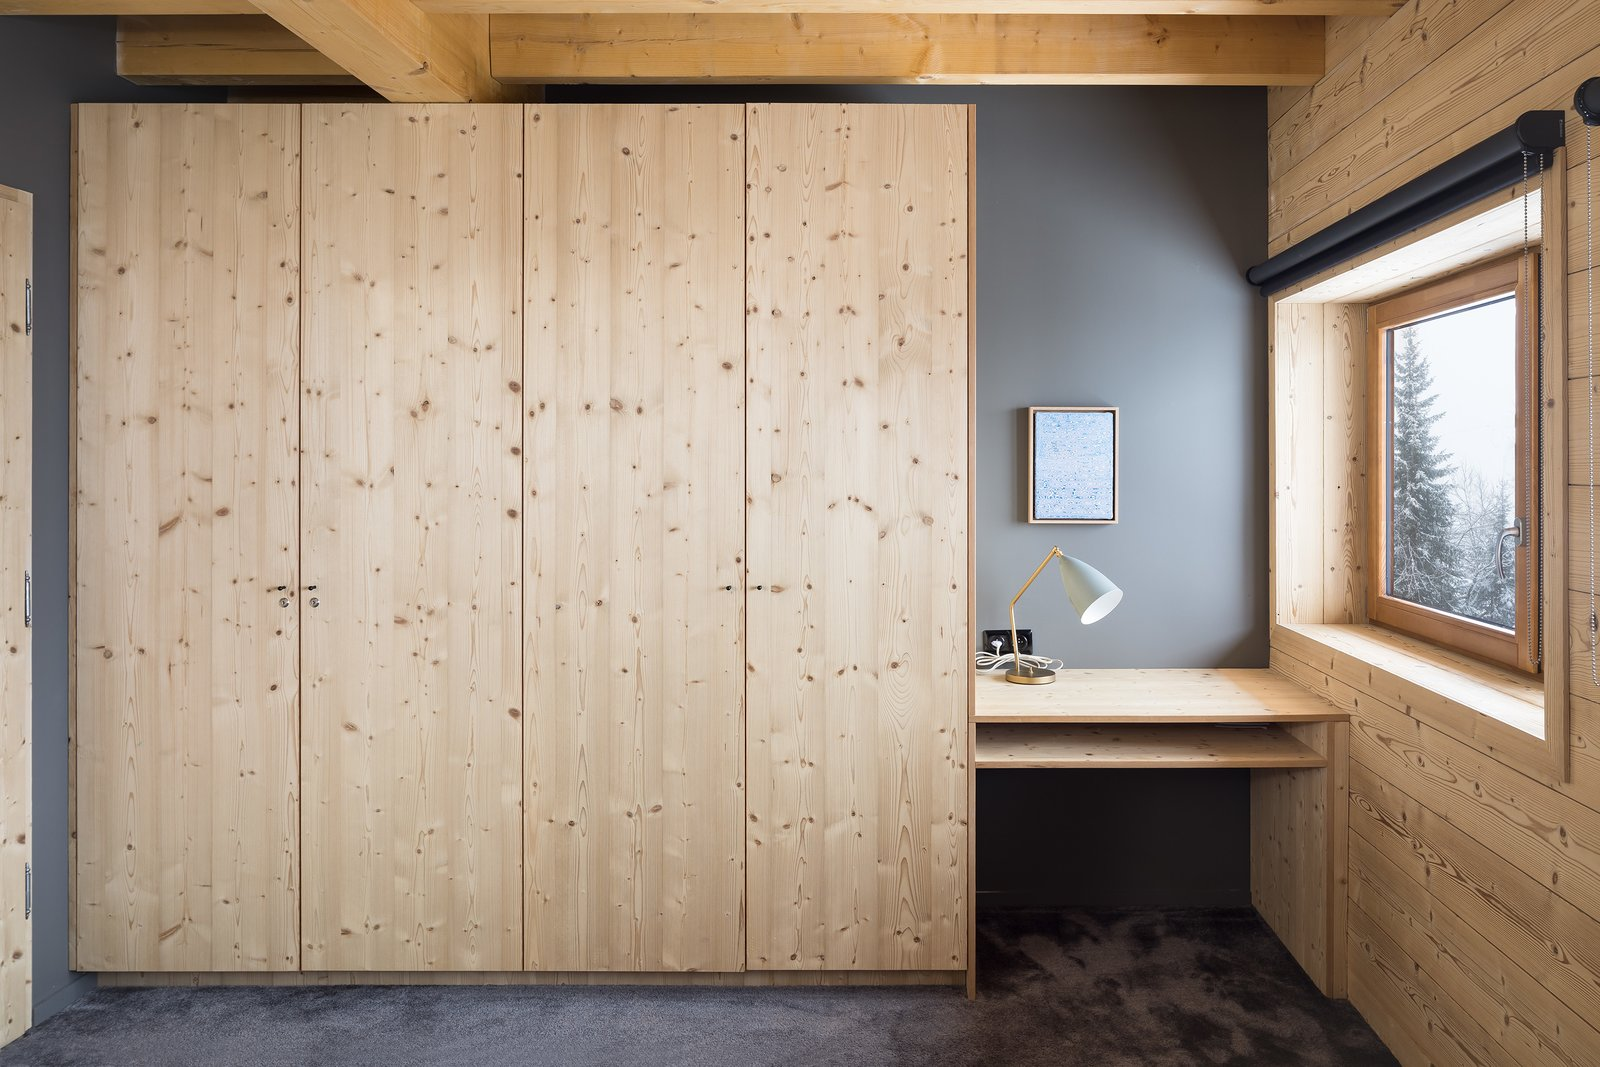 Tagged: Bedroom, Wardrobe, Table Lighting, and Carpet Floor. Mountain House by studio razavi architecture